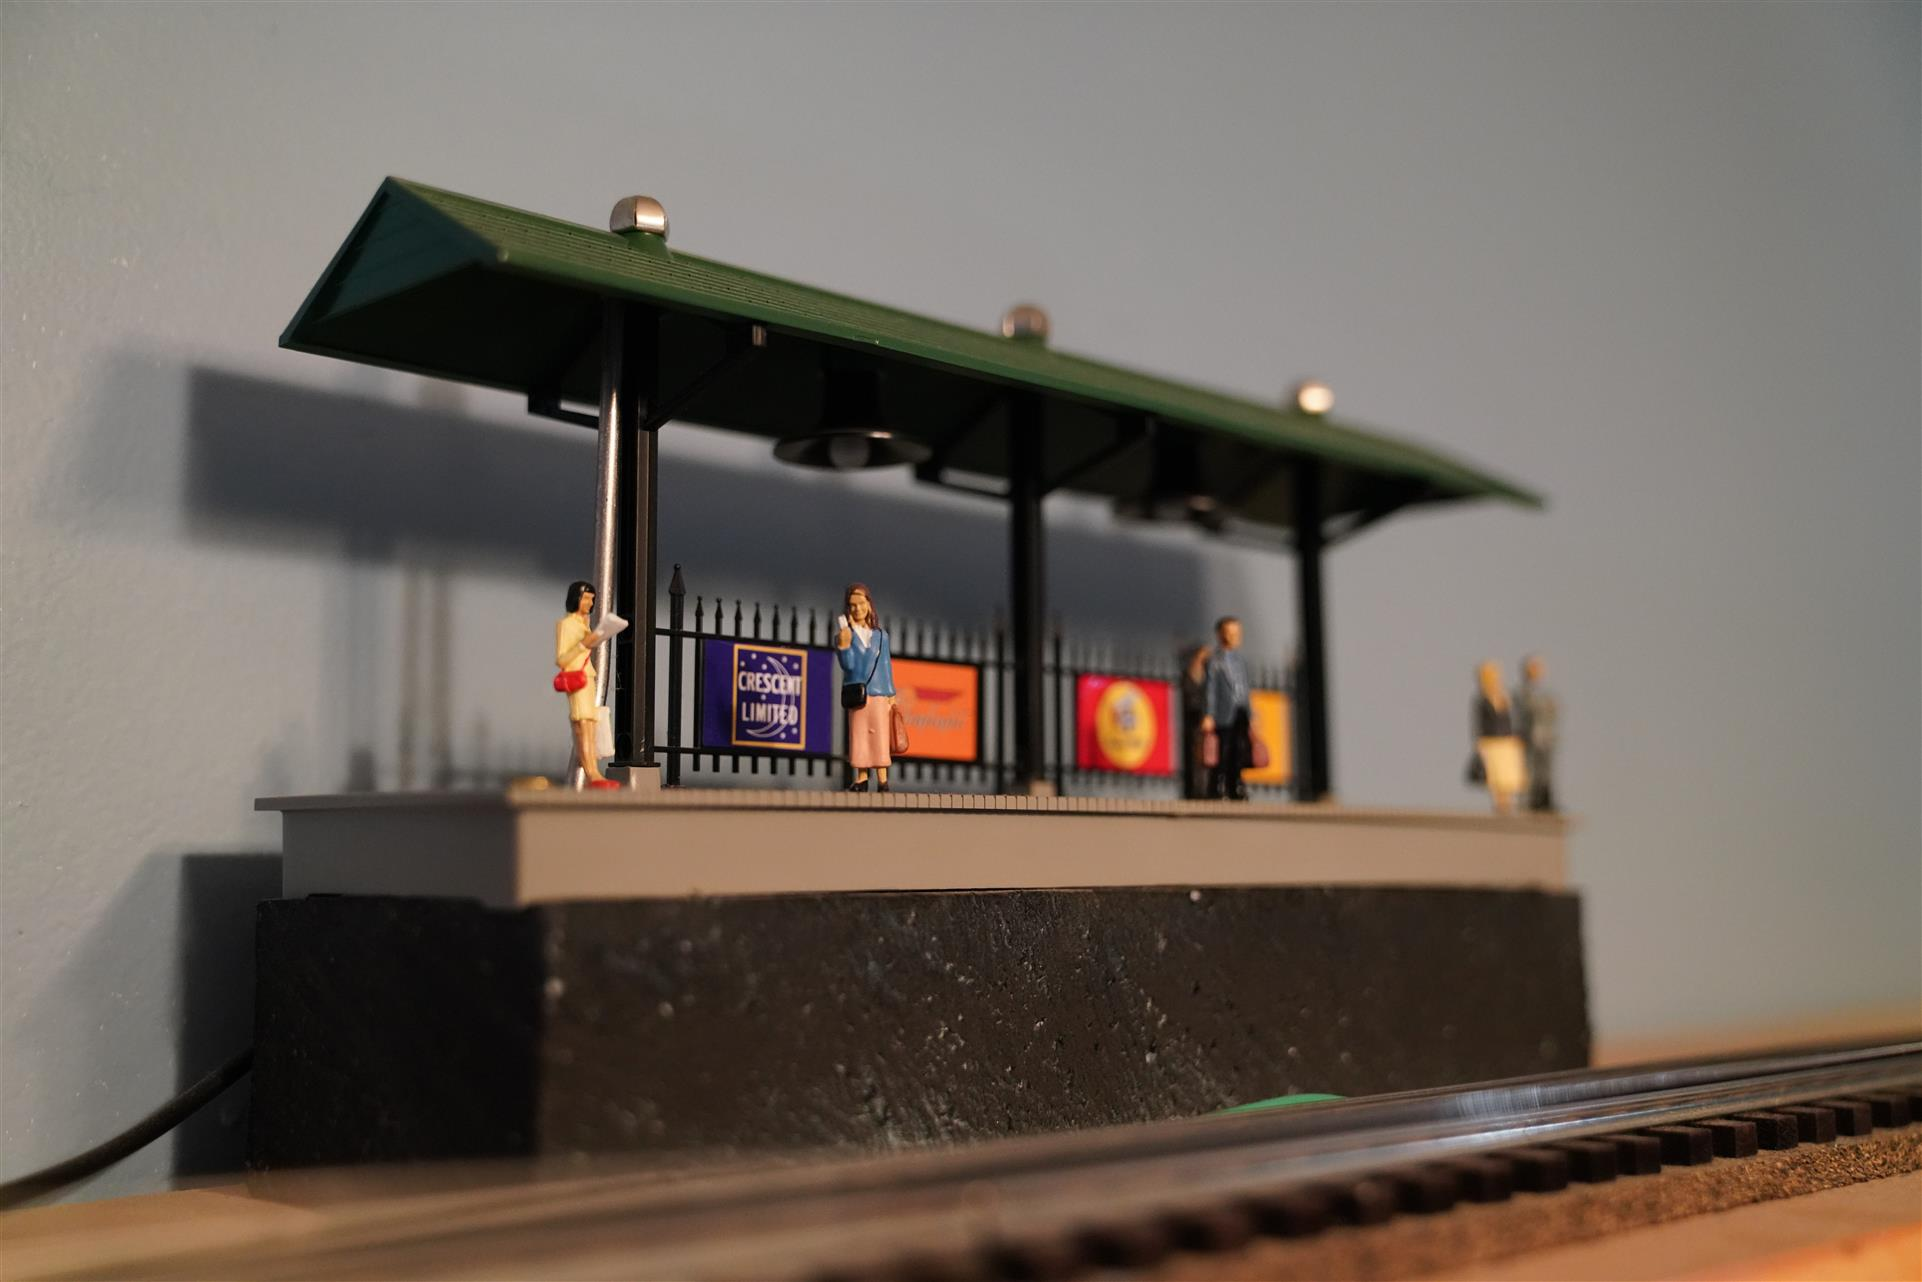 train station model set up on ledge